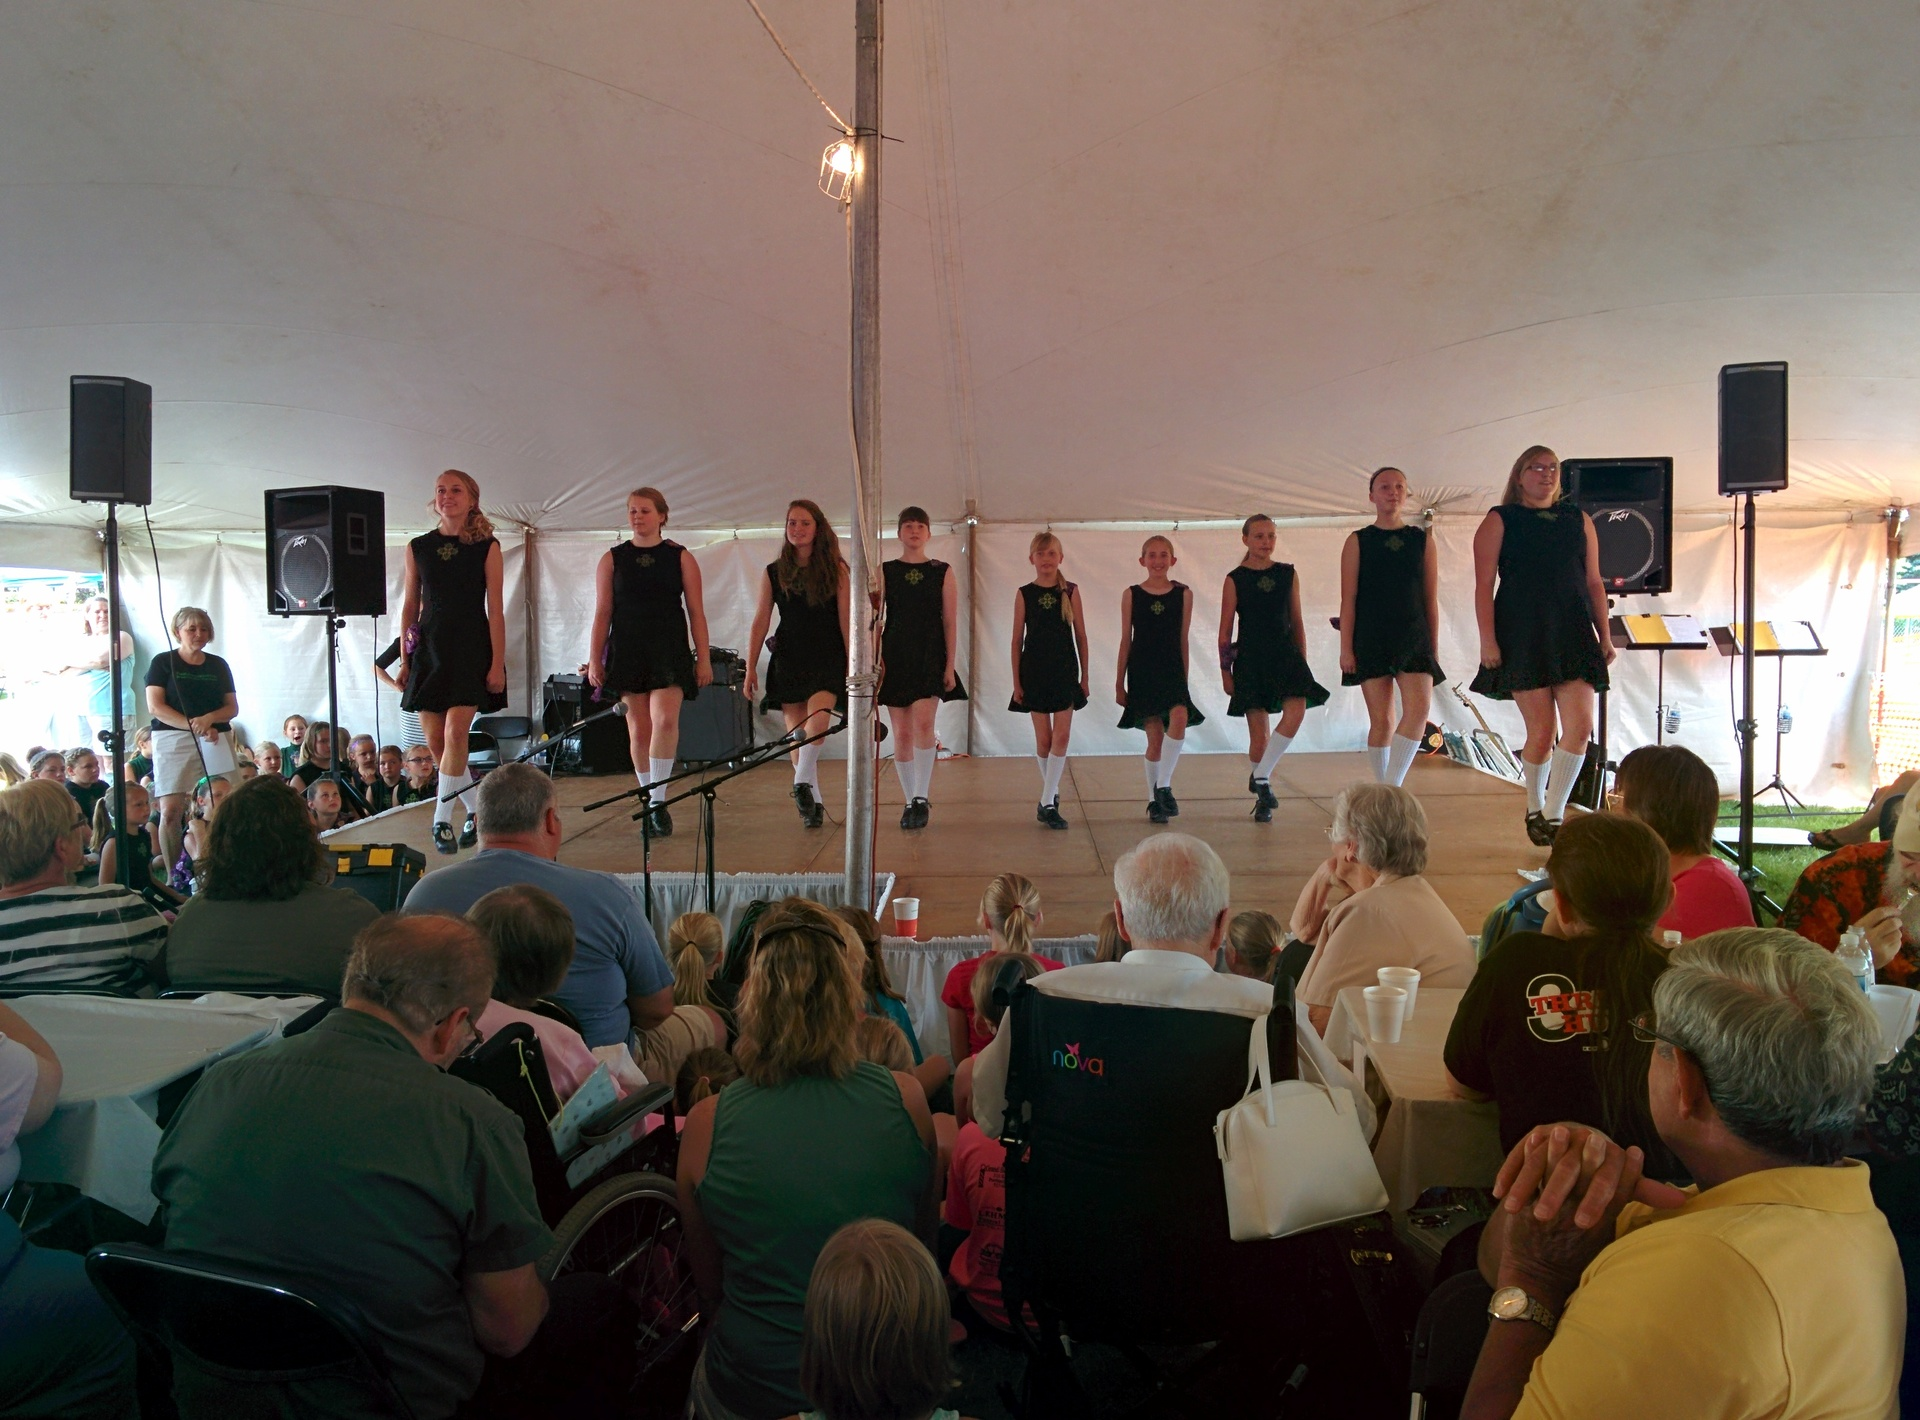 The Hubbardston Irish Dancers